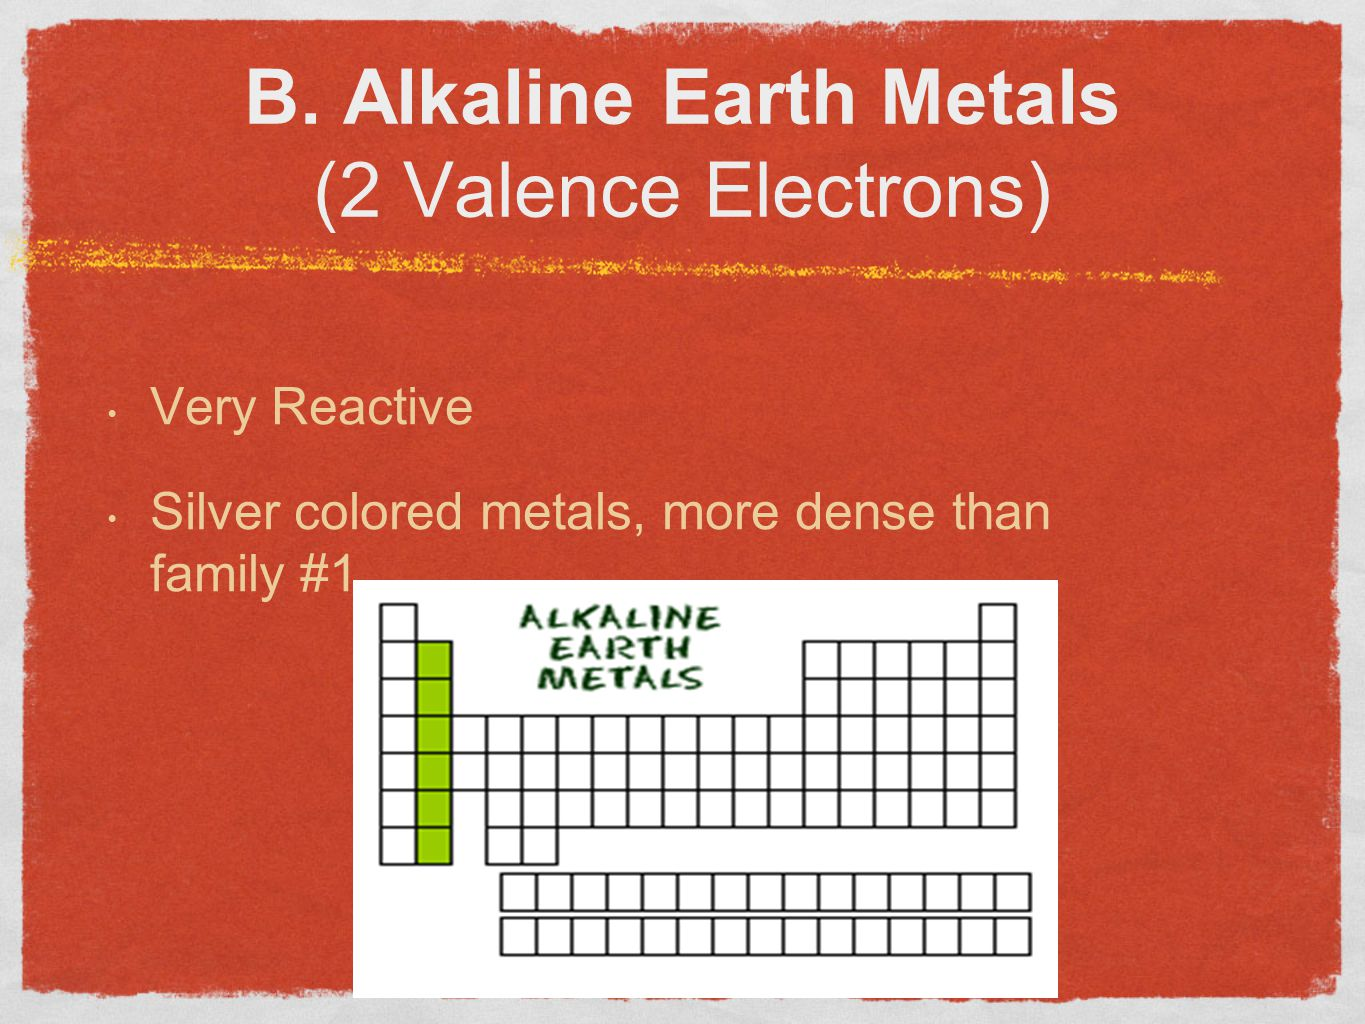 B. Alkaline Earth Metals (2 Valence Electrons)